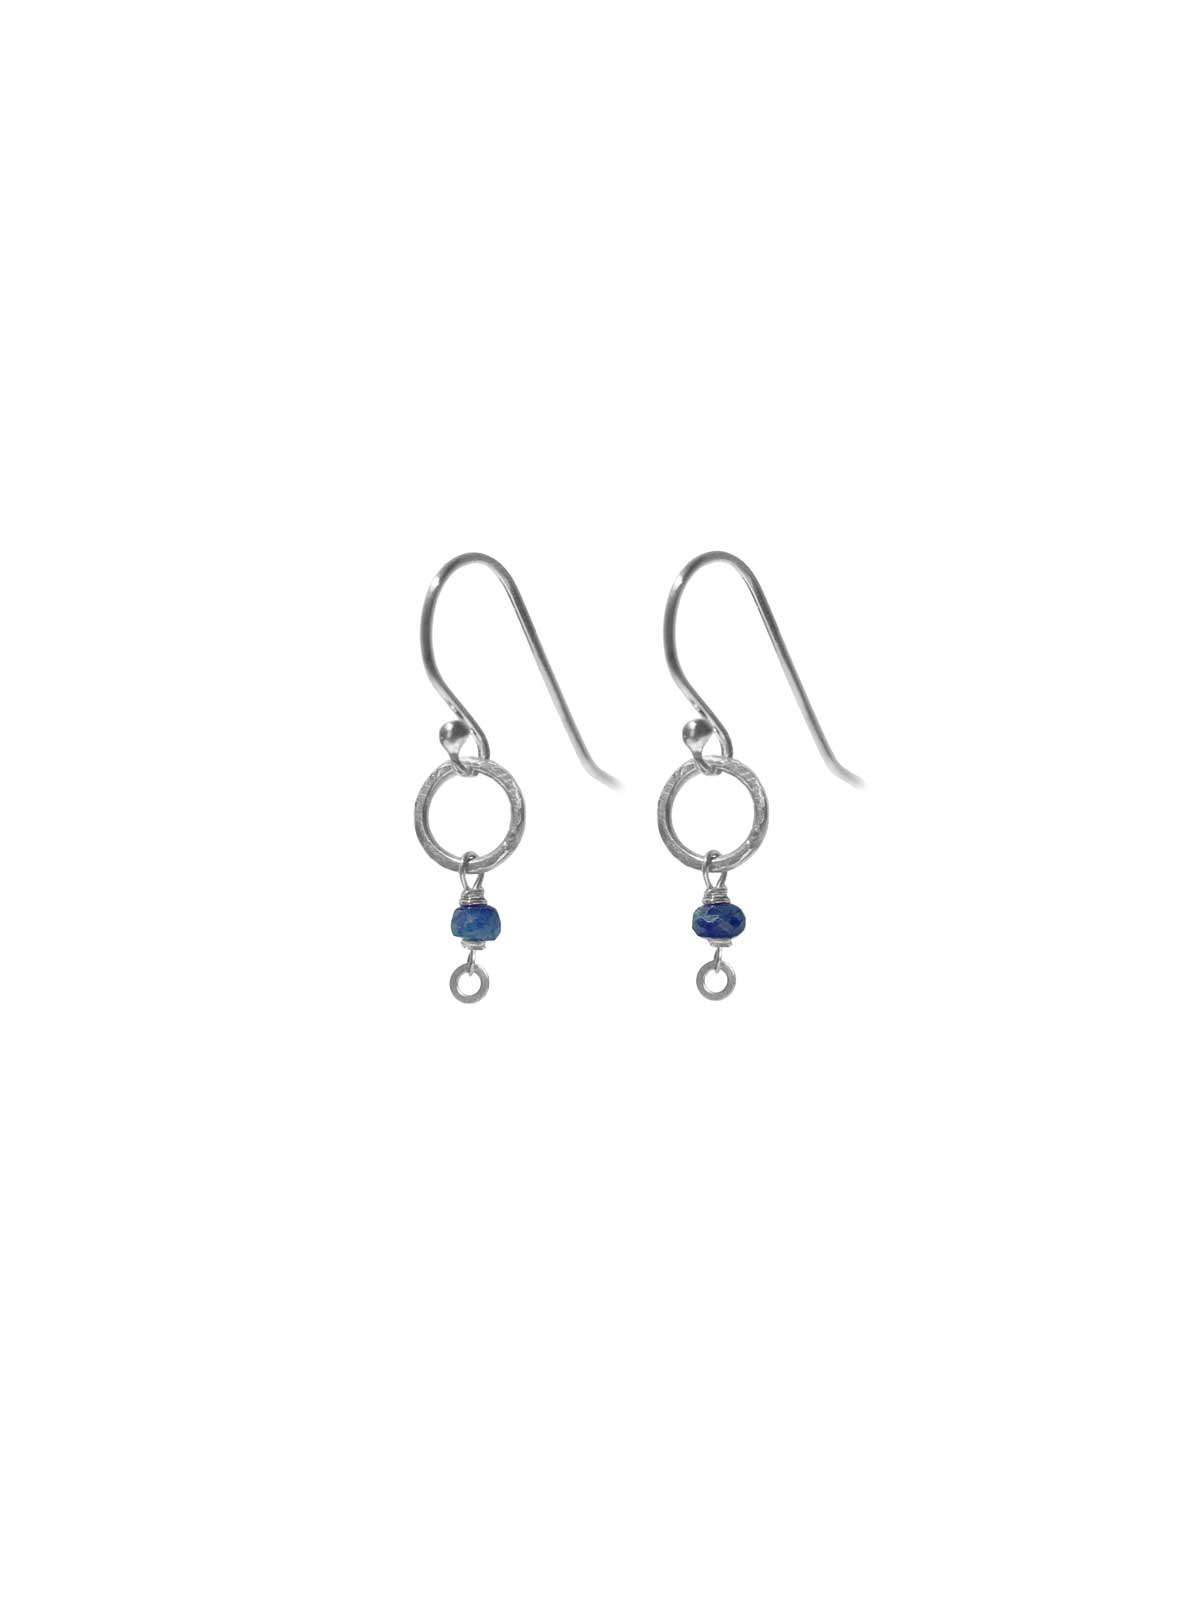 Earrings in Sterling Silver and Sapphire